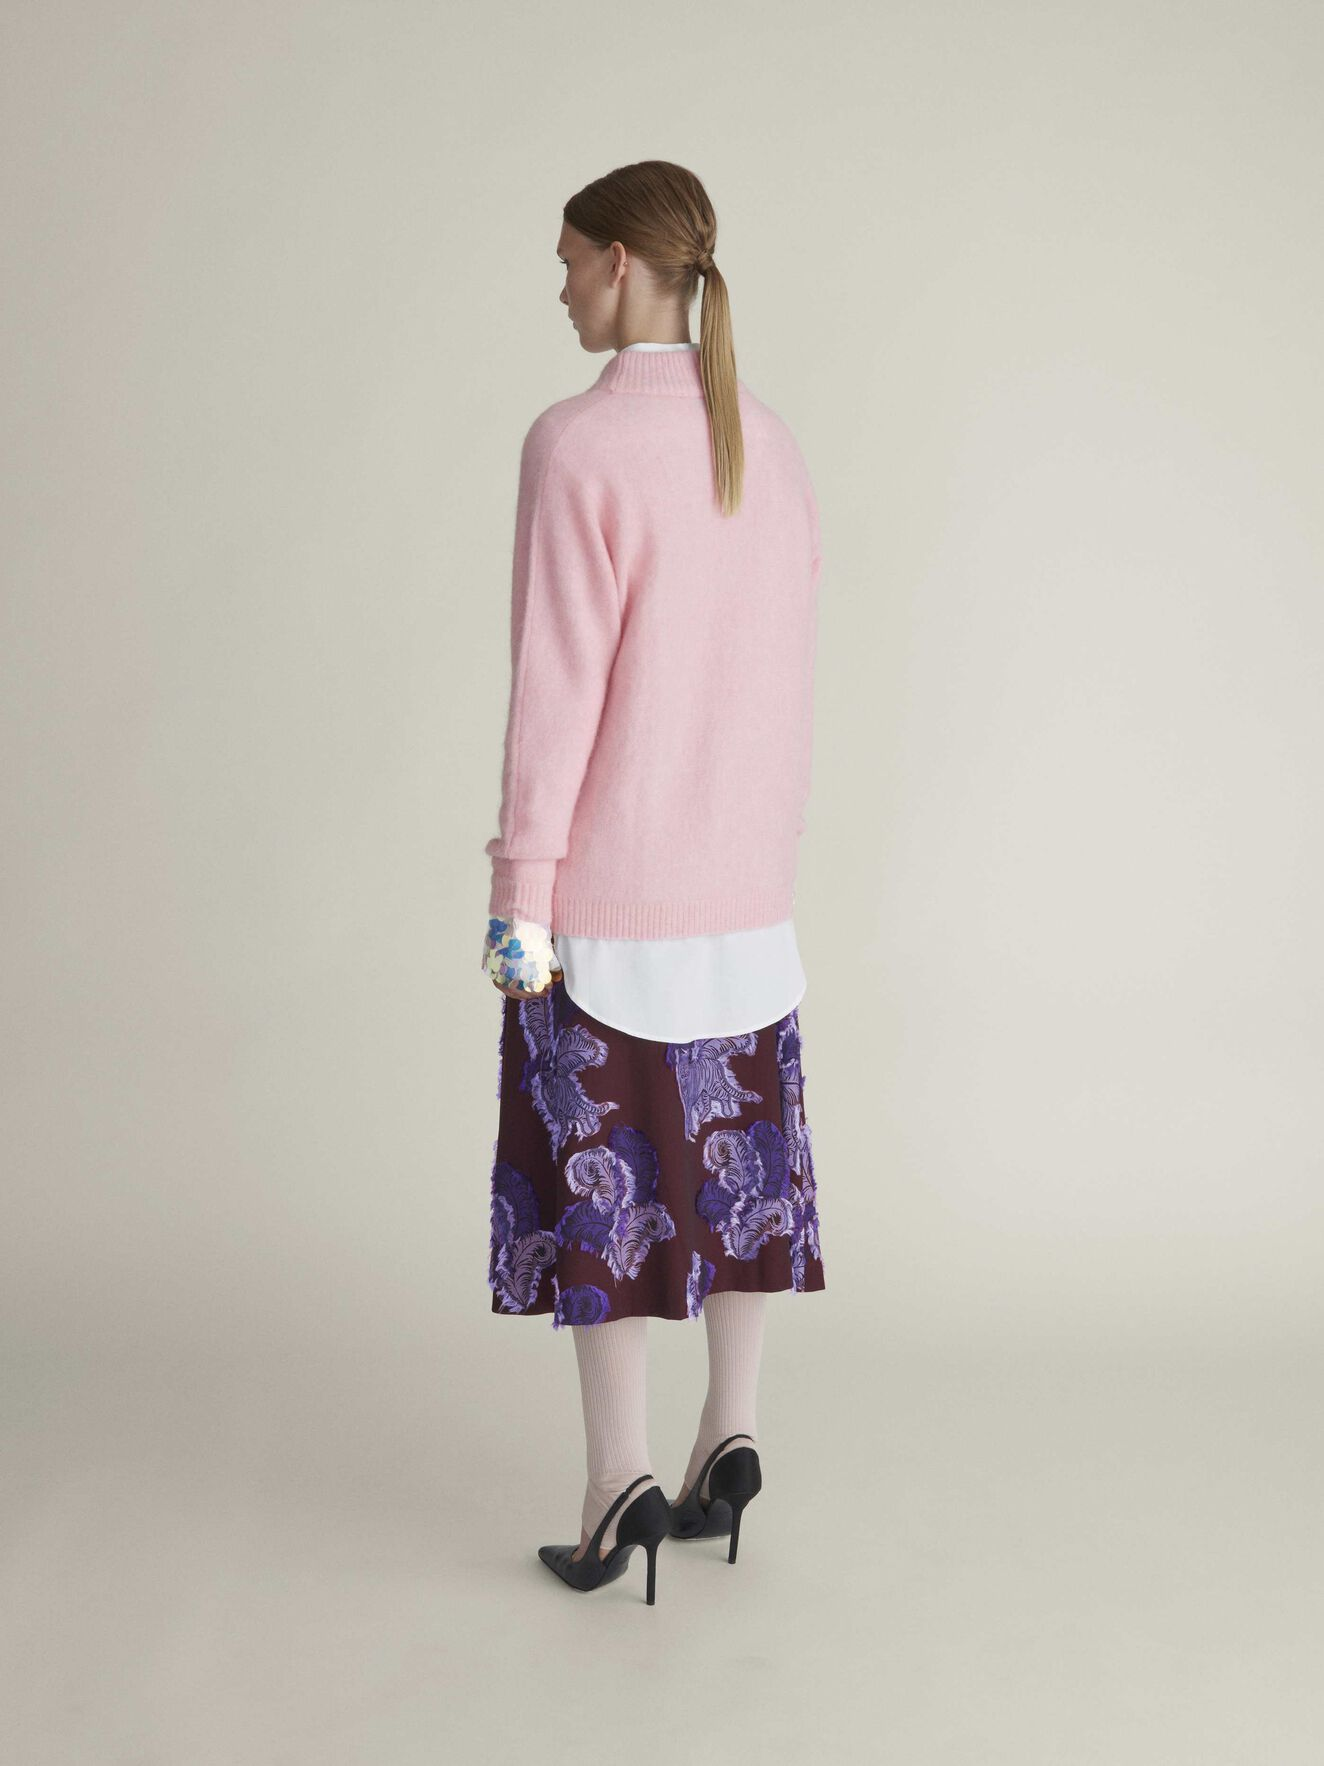 Cassio Pullover in Peach Blush from Tiger of Sweden